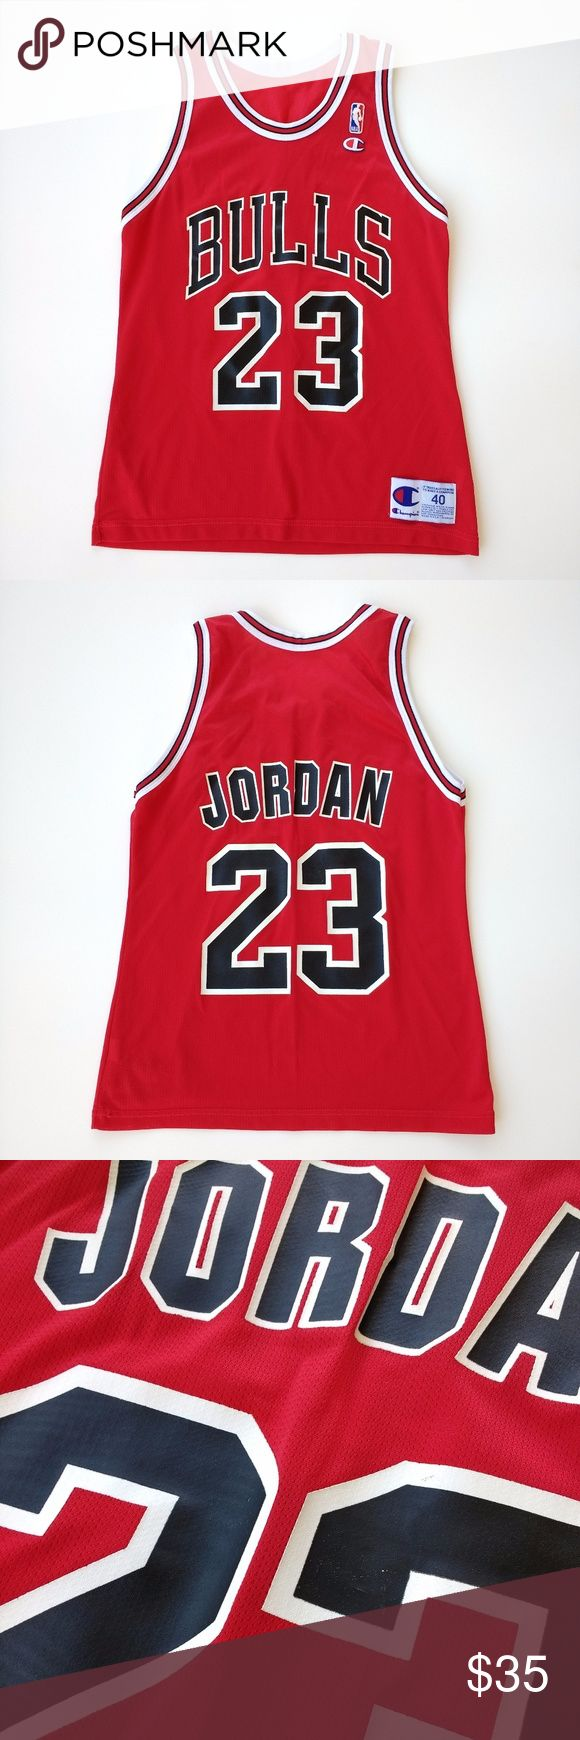 Vintage Chicago Bulls Michael Jordan Jersey sz 40 Vintage Champion Chicago Bulls Michael Jordan Jersey sz 40  Garment is in good pre-owned/worn condition - ink on back is starting to chip/crack Champion Shirts